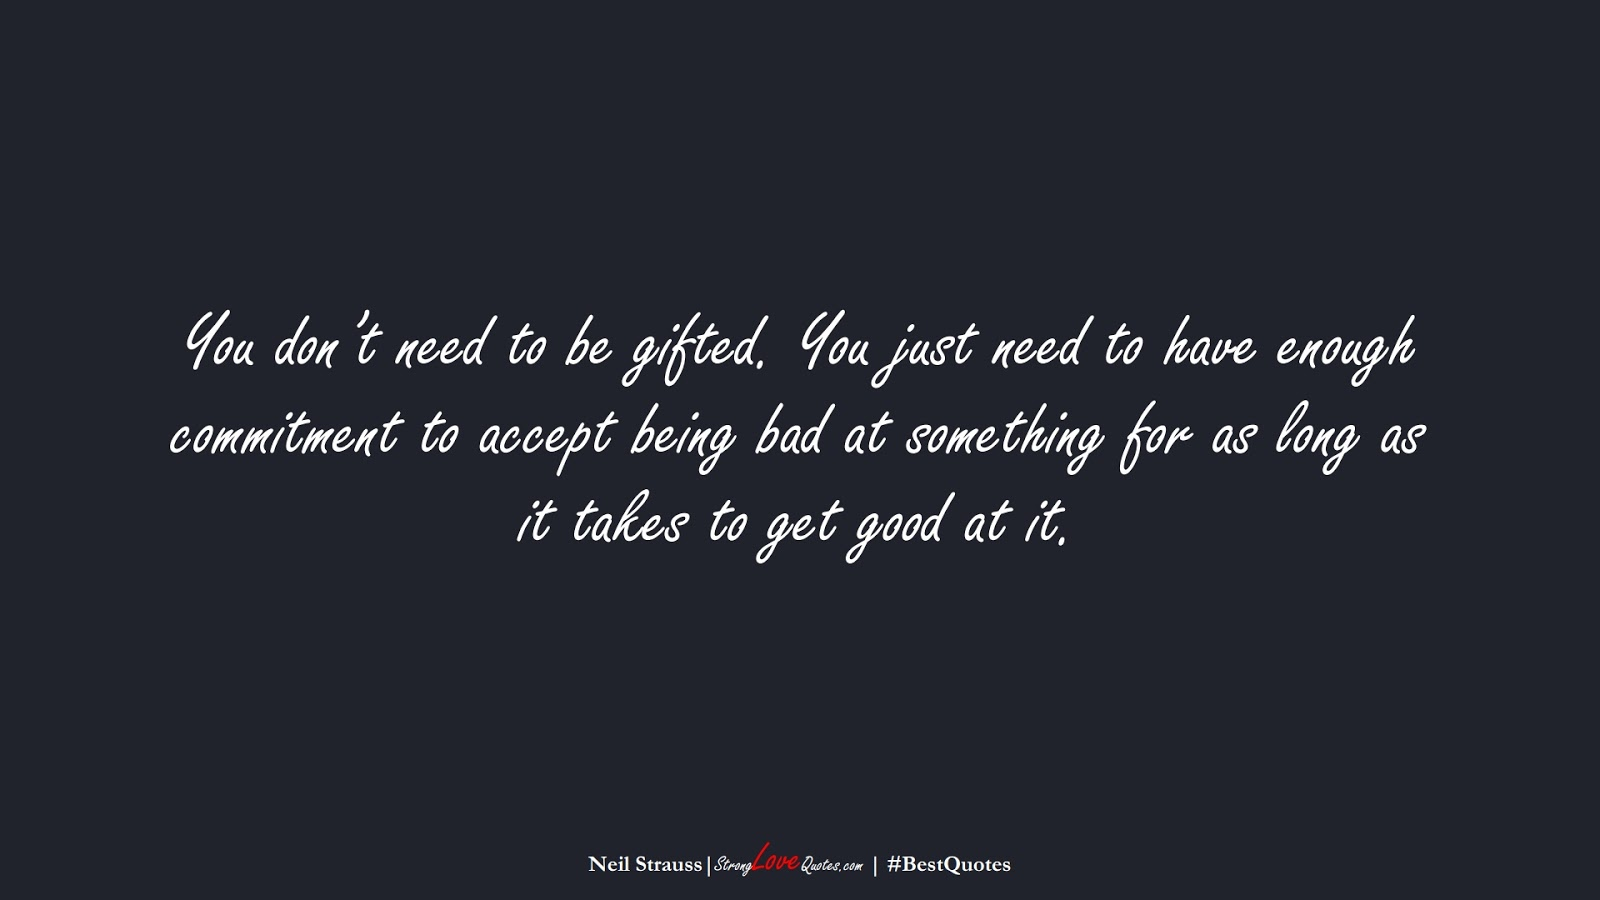 You don't need to be gifted. You just need to have enough commitment to accept being bad at something for as long as it takes to get good at it. (Neil Strauss);  #BestQuotes